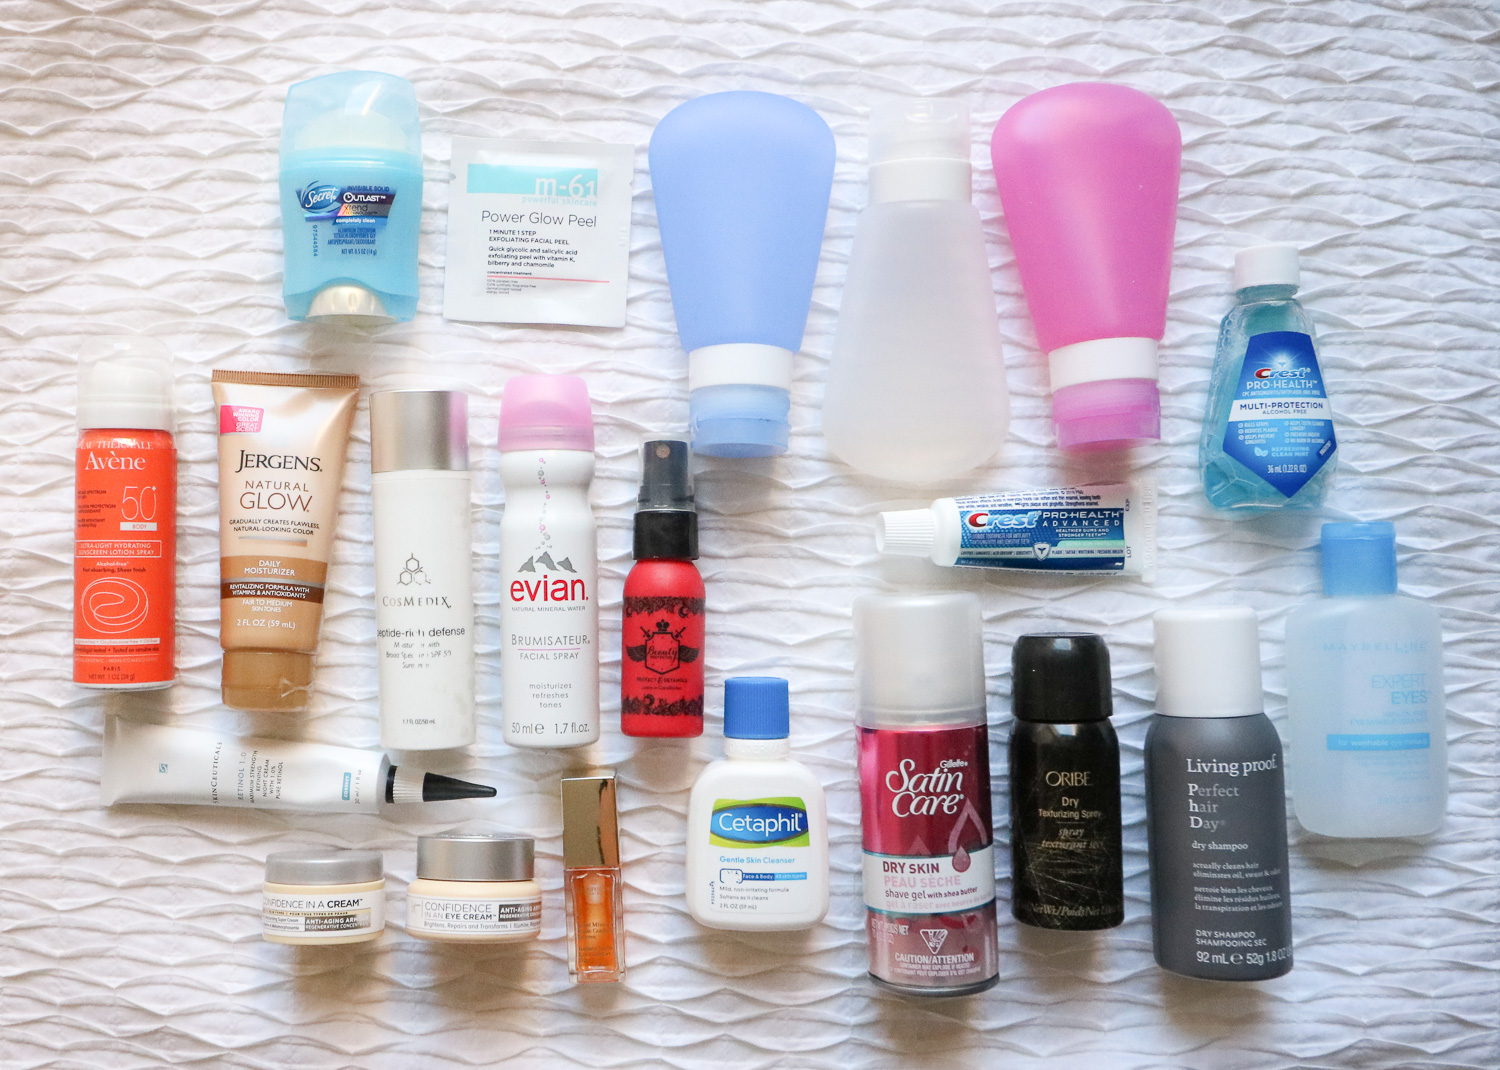 Travel Toiletry Necessities – What I Packed for Two Weeks In Europe (In My Carry-On!)